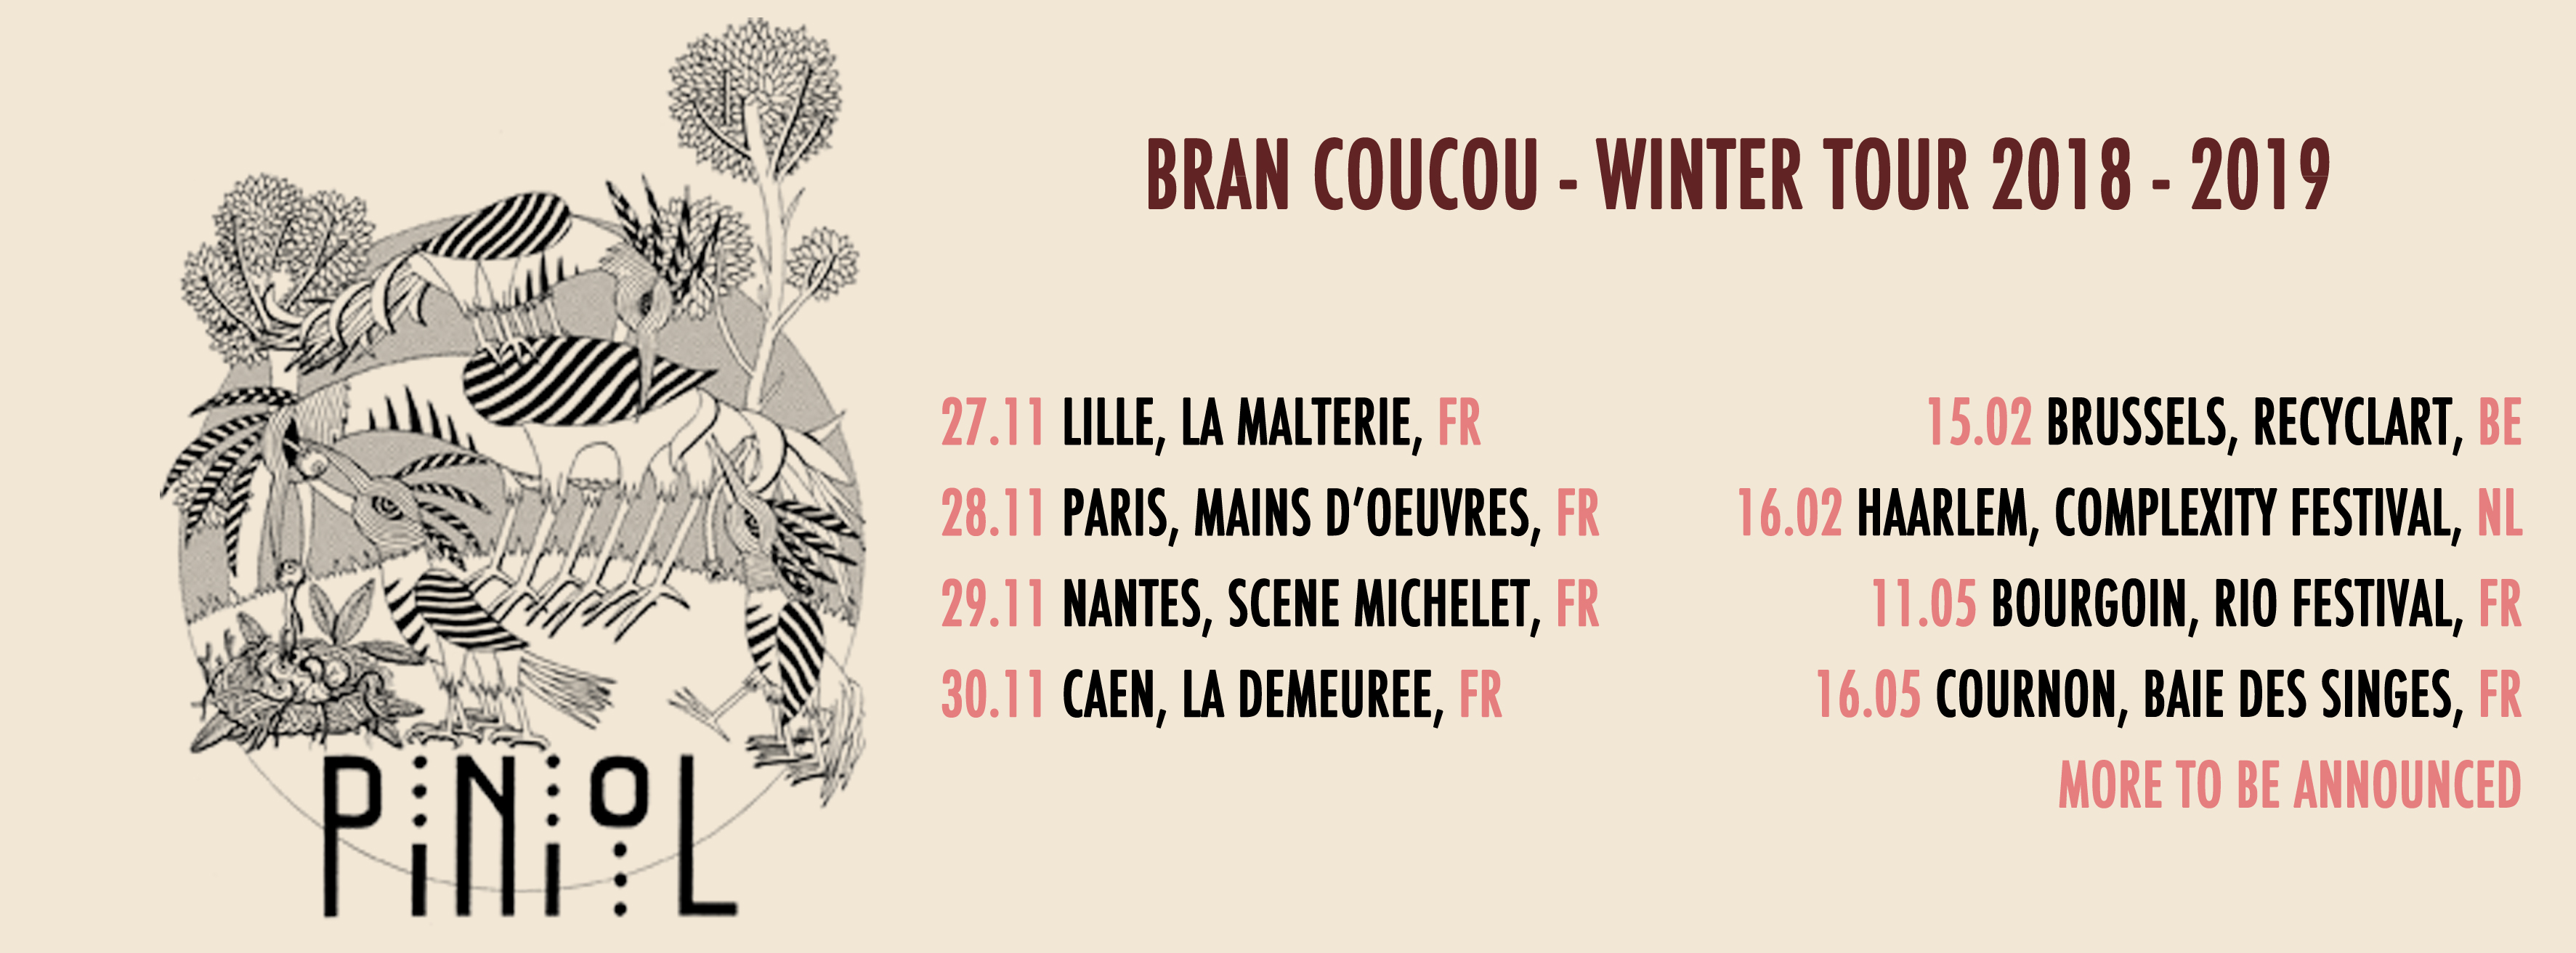 PinioL winter tour - artwork by Willy ténia and Dur et Doux